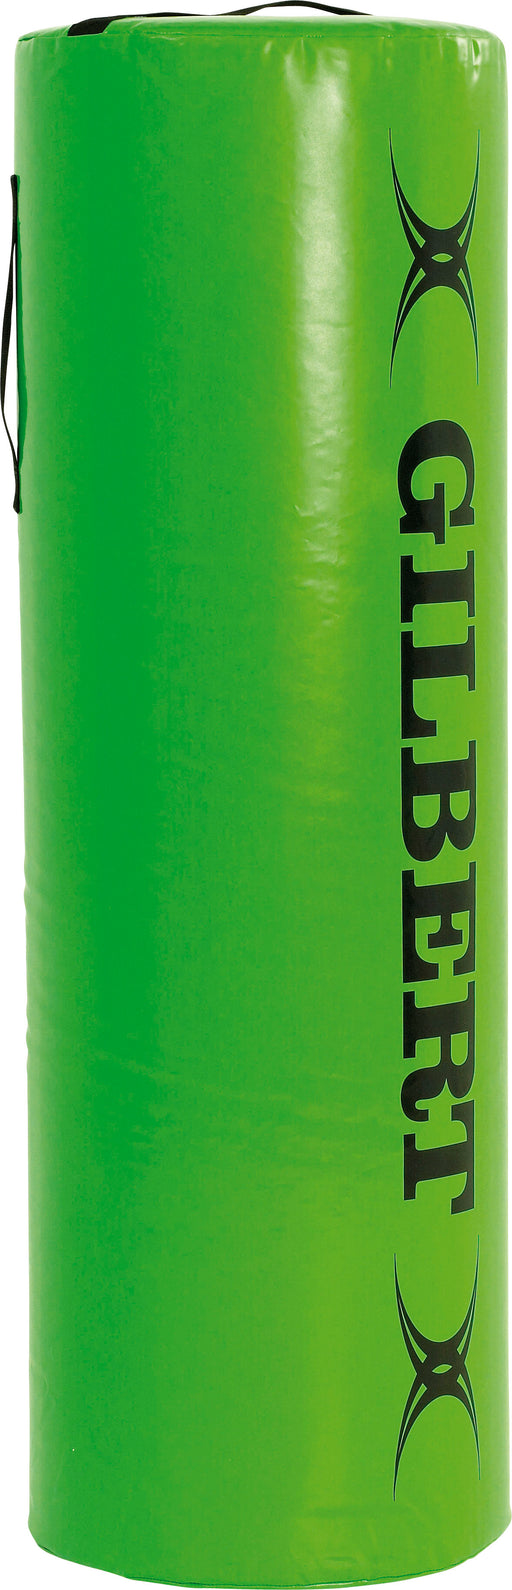 Gilbert Tackle Bags